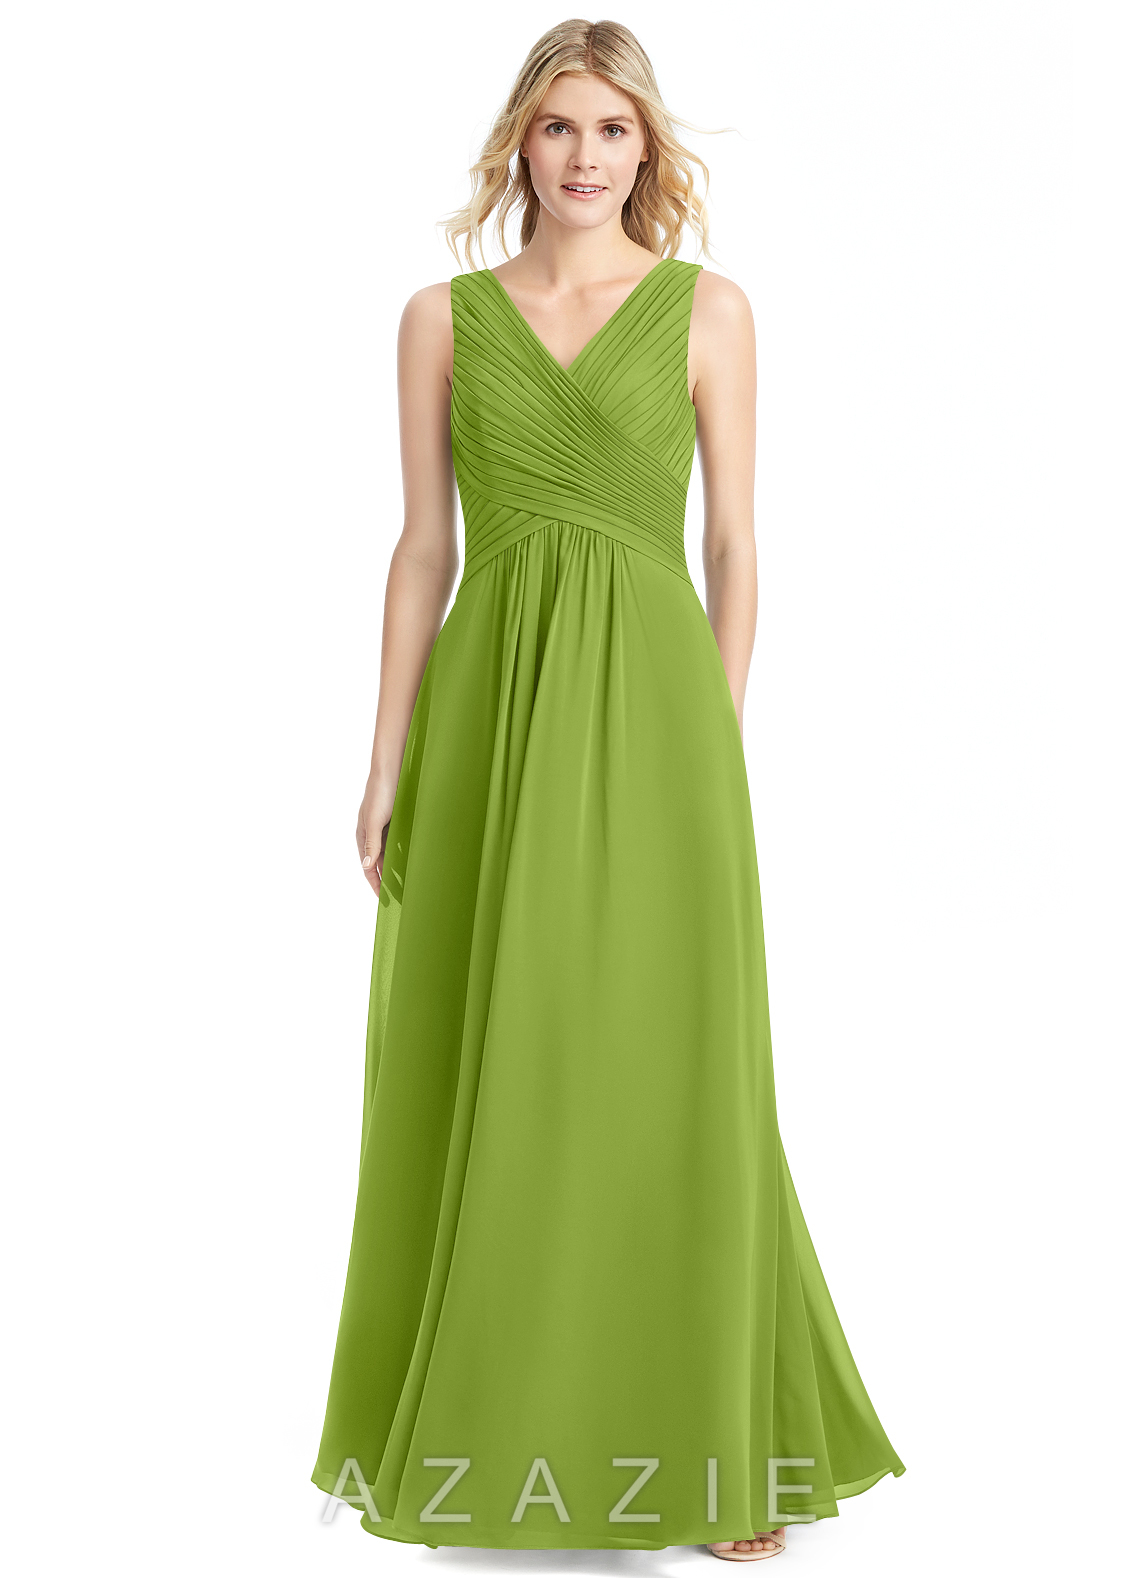 Azazie flora bridesmaid dress azazie color clover ombrellifo Choice Image